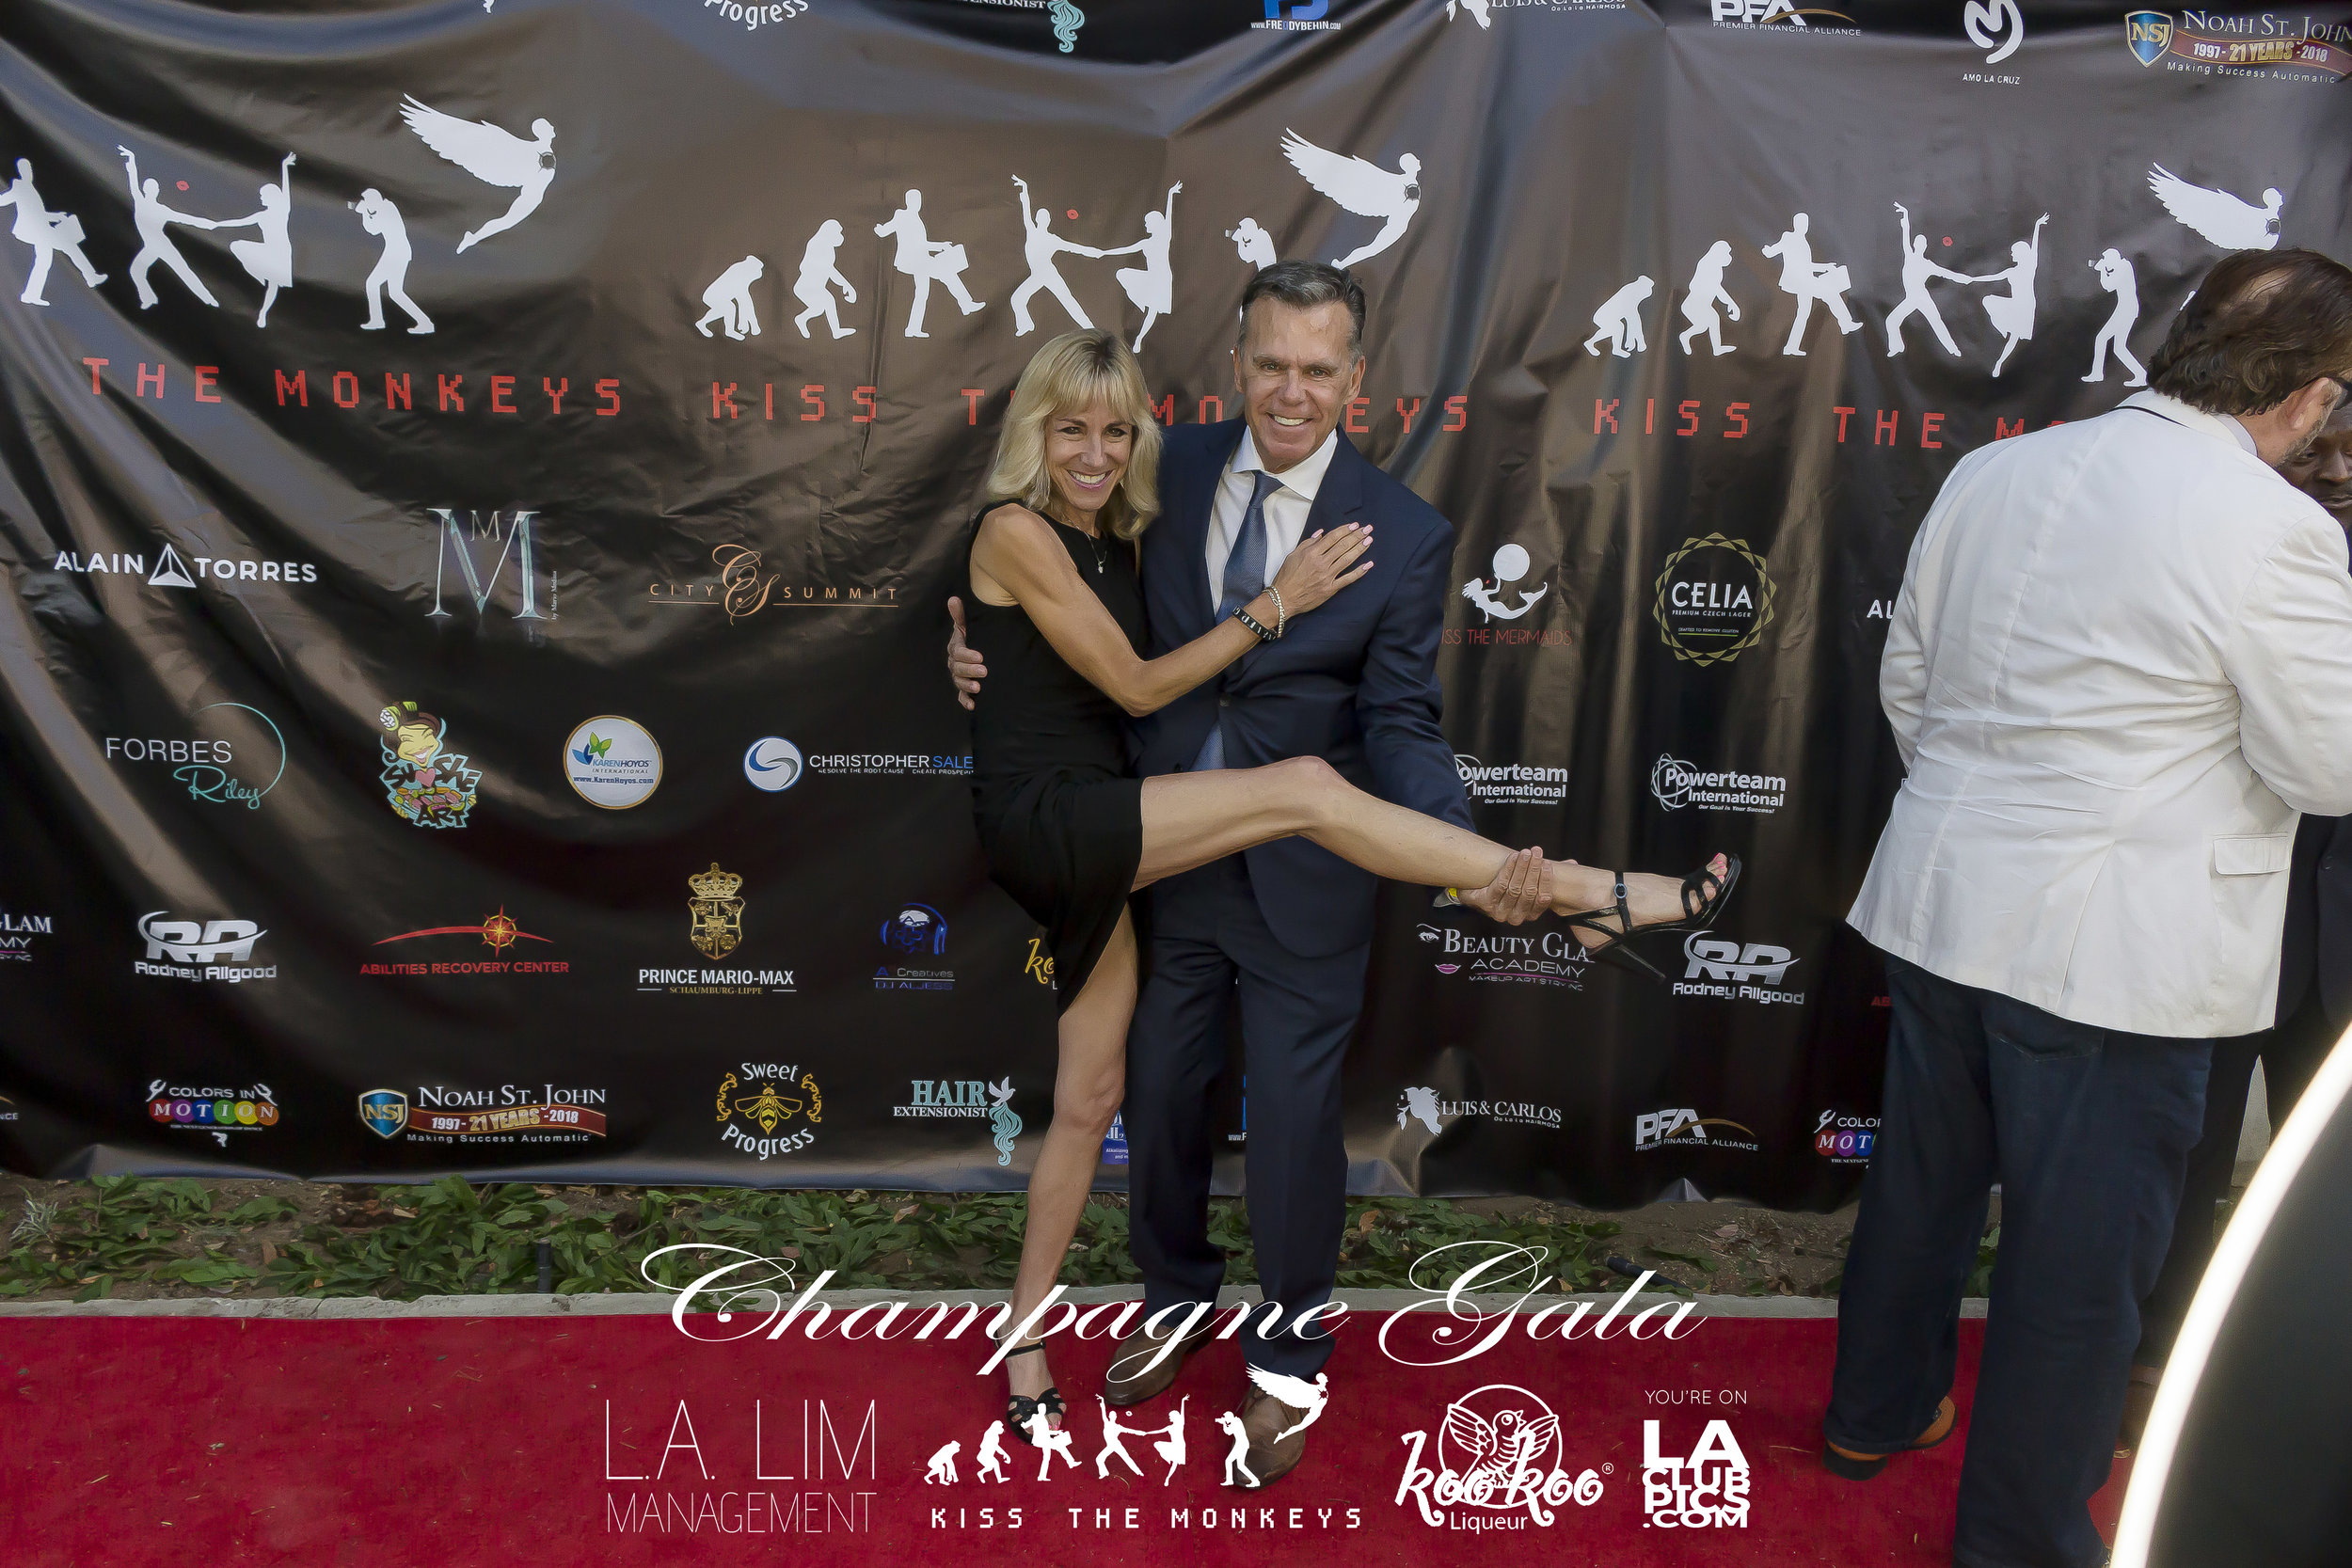 Kiss The Monkeys - Champagne Gala - 07-21-18_130.jpg